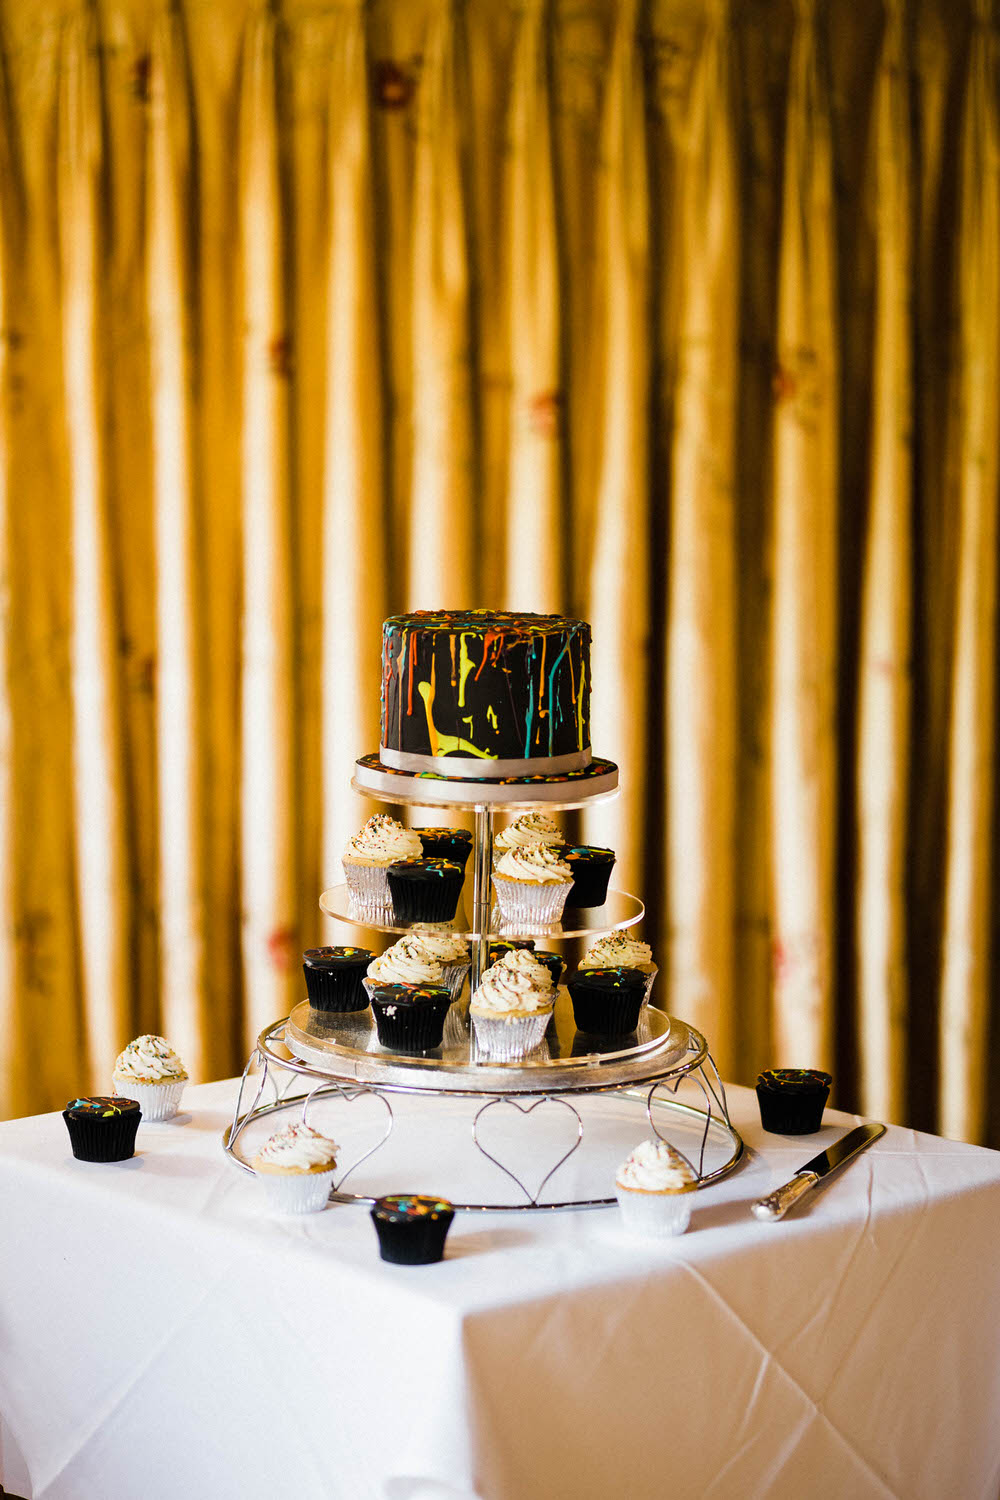 Special-Day-Photography-Egypt-Mills-Hotel-Stroud-Same-sex-weddings-in-Nailsworth-cupcake-wedding-cake-idea.jpg